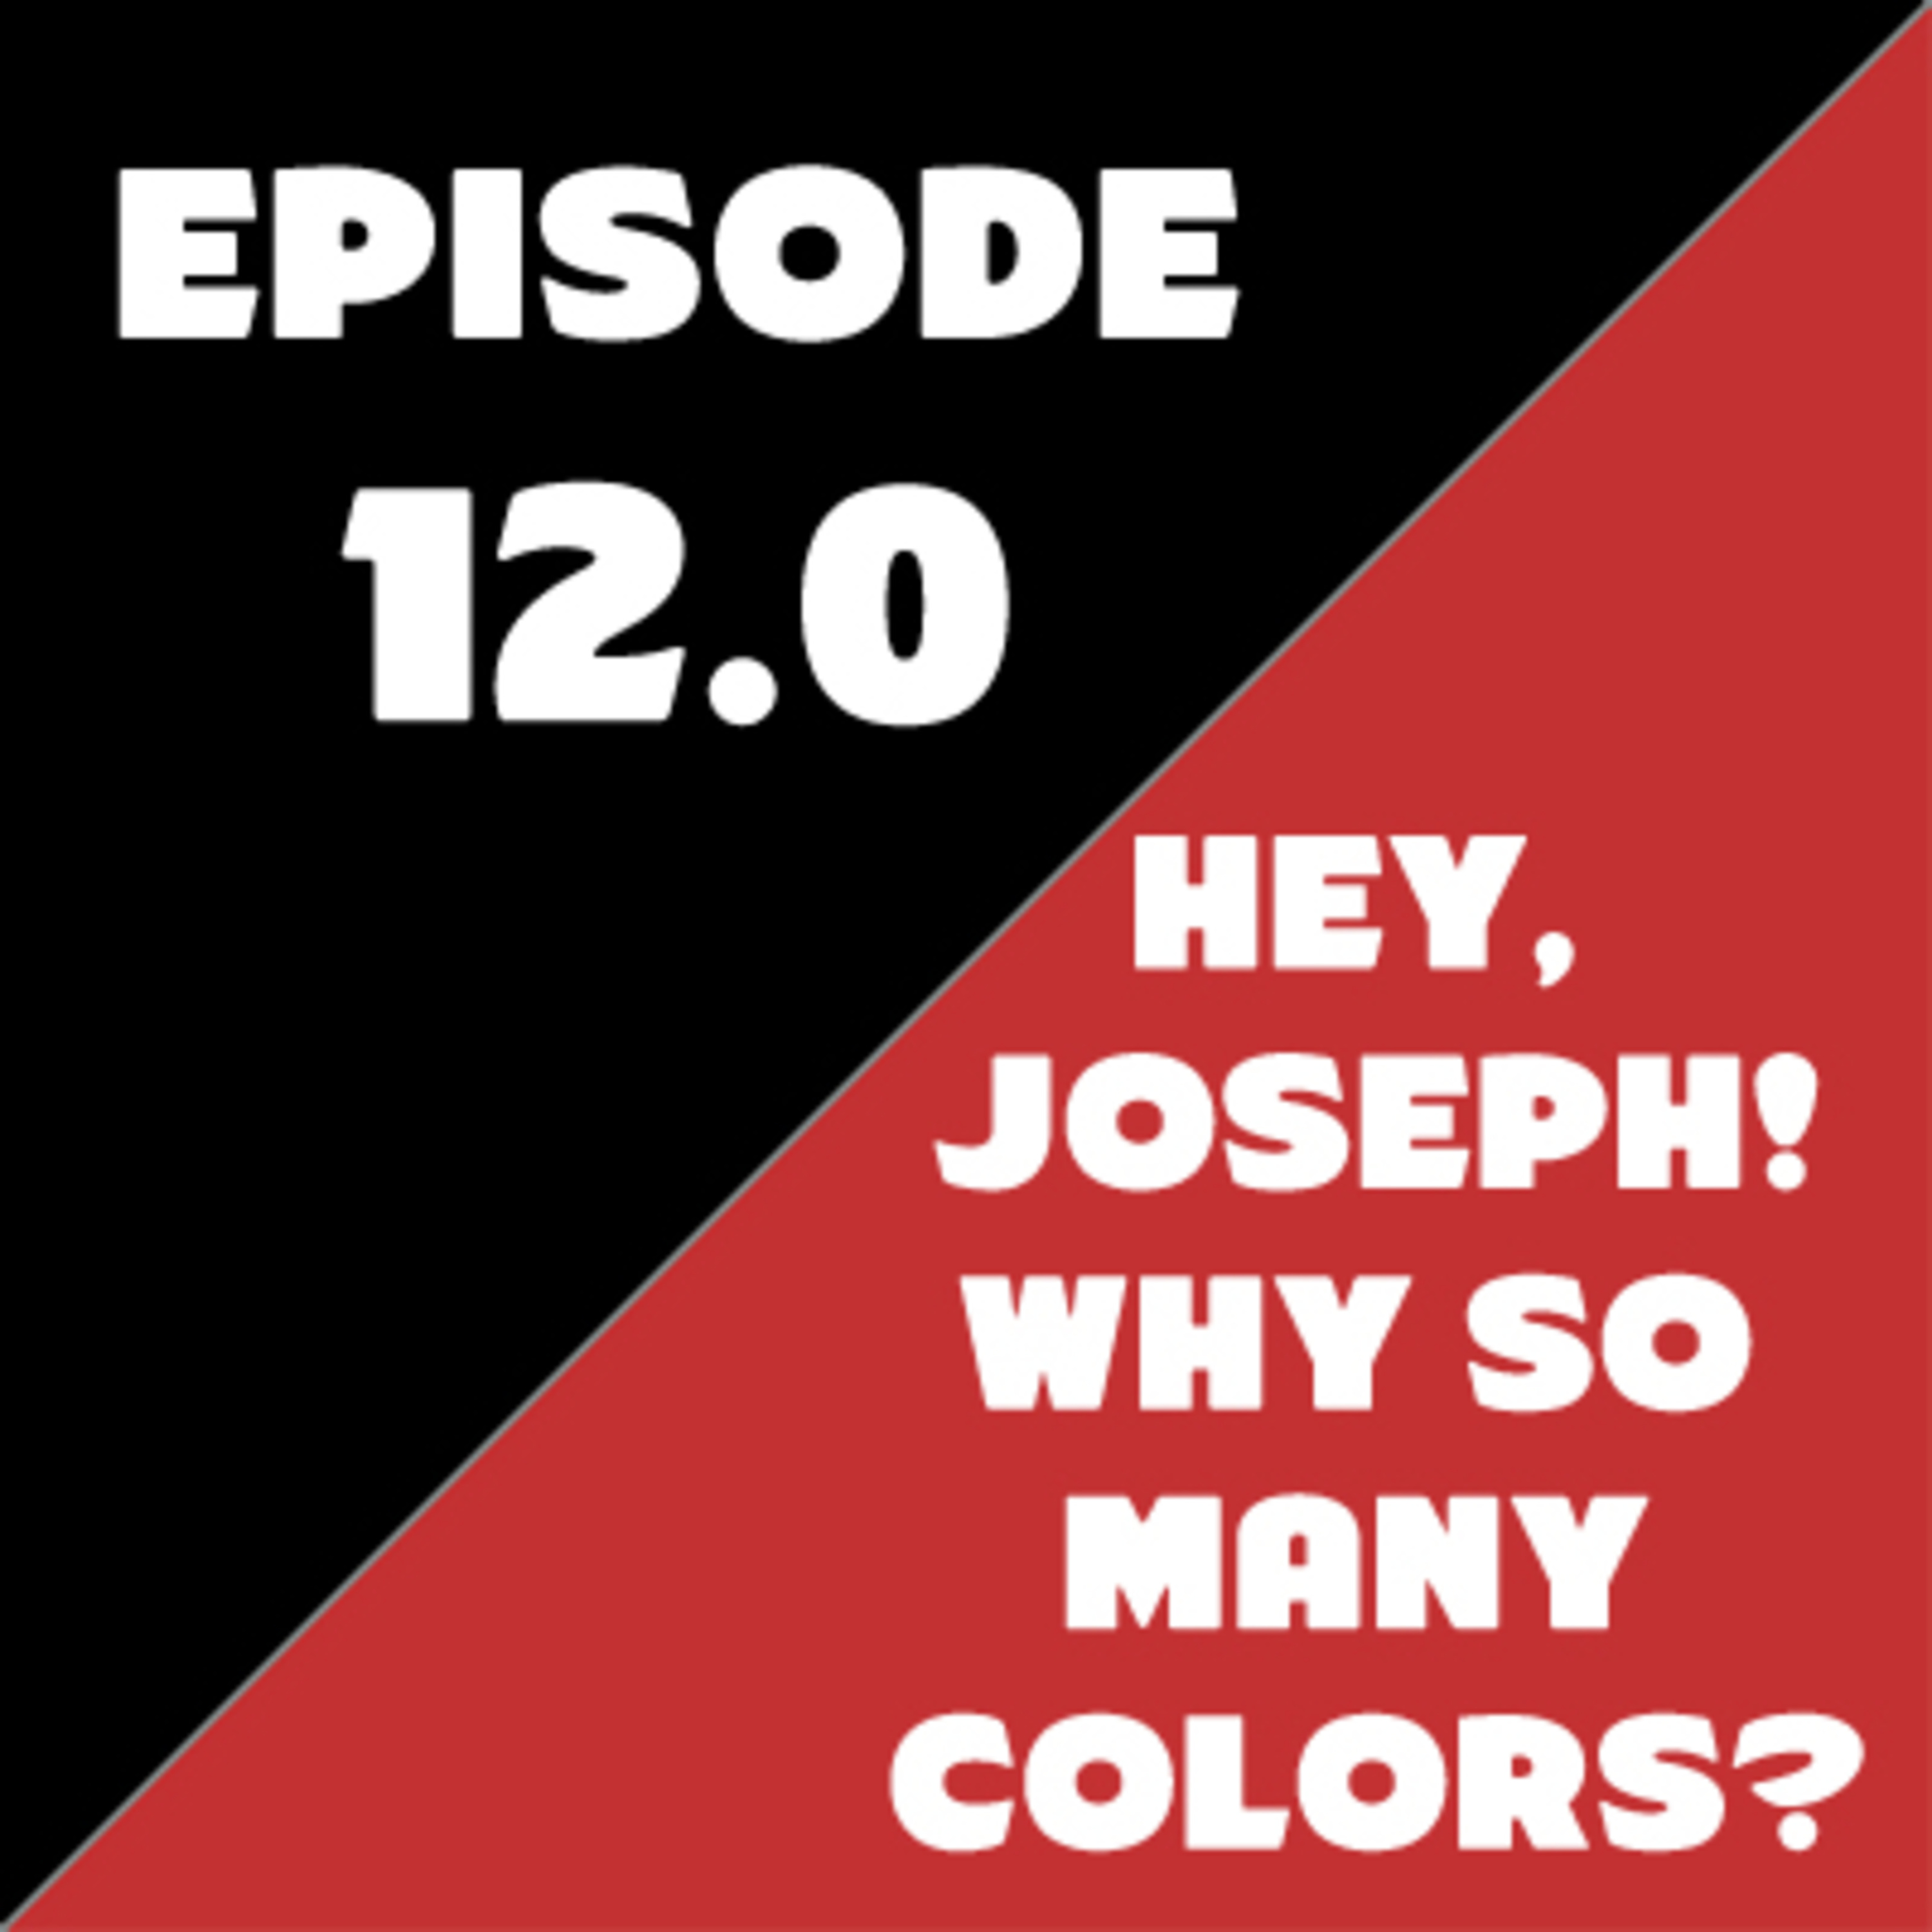 Episode 12 - Hey, Joseph! Why So Many Colors?